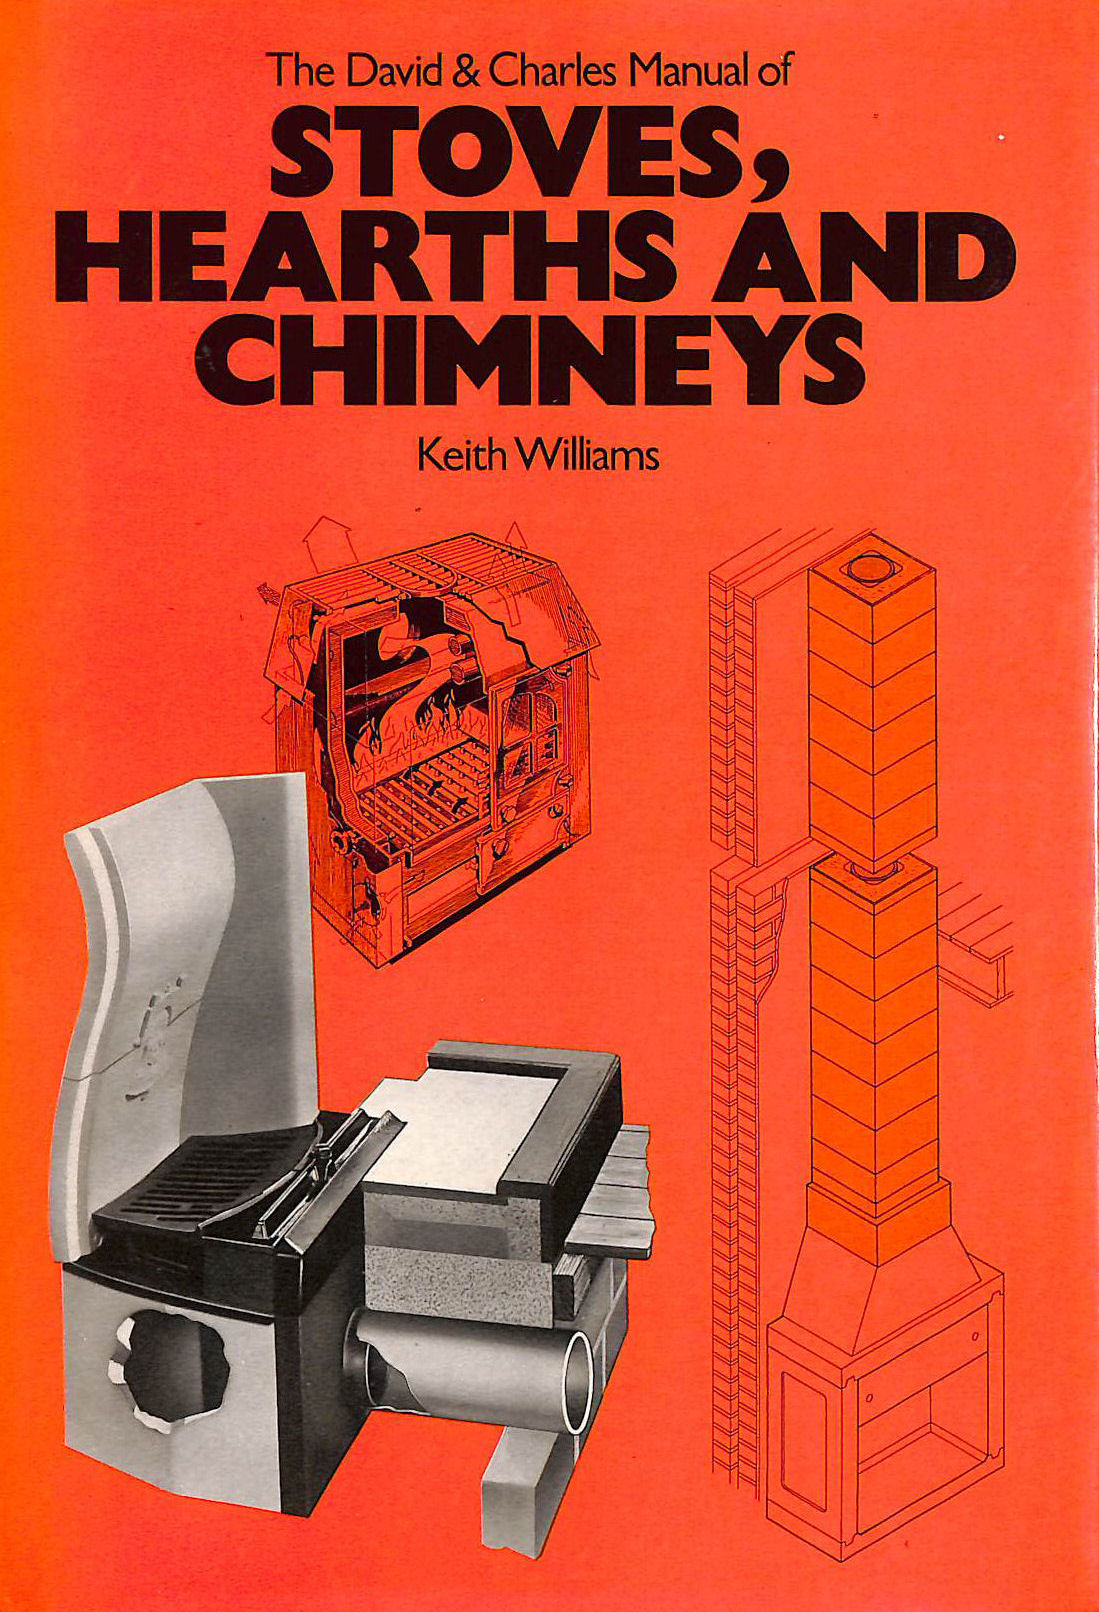 Image for The David & Charles Manual of Stoves, Hearths and Chimneys